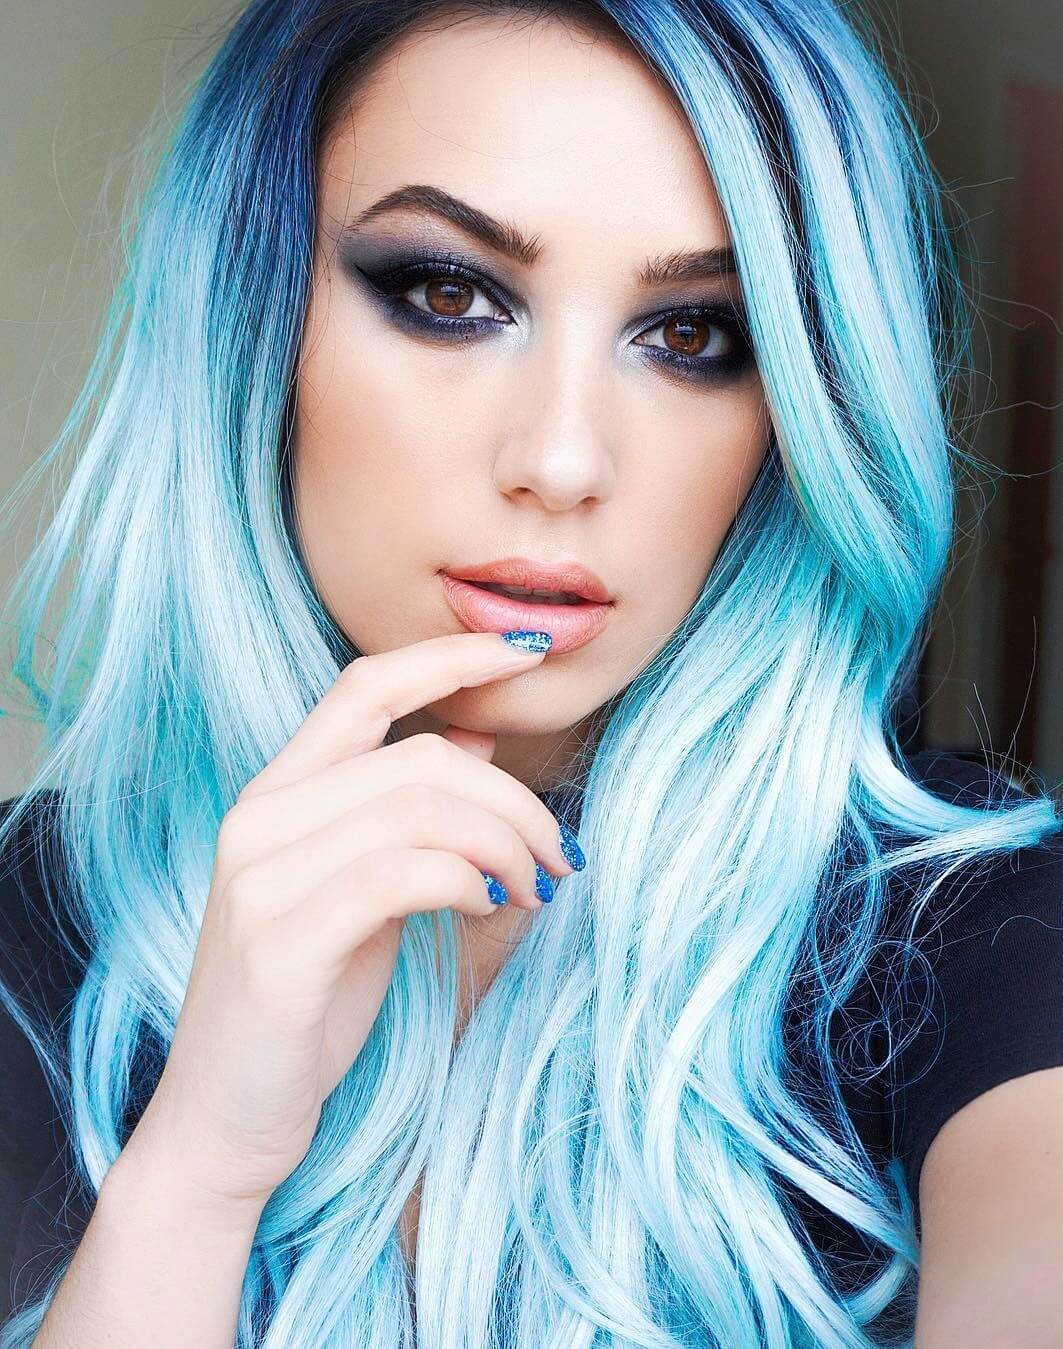 30 More Edgy Hair Color Ideas Worth Trying - Page 29 of 30 ...